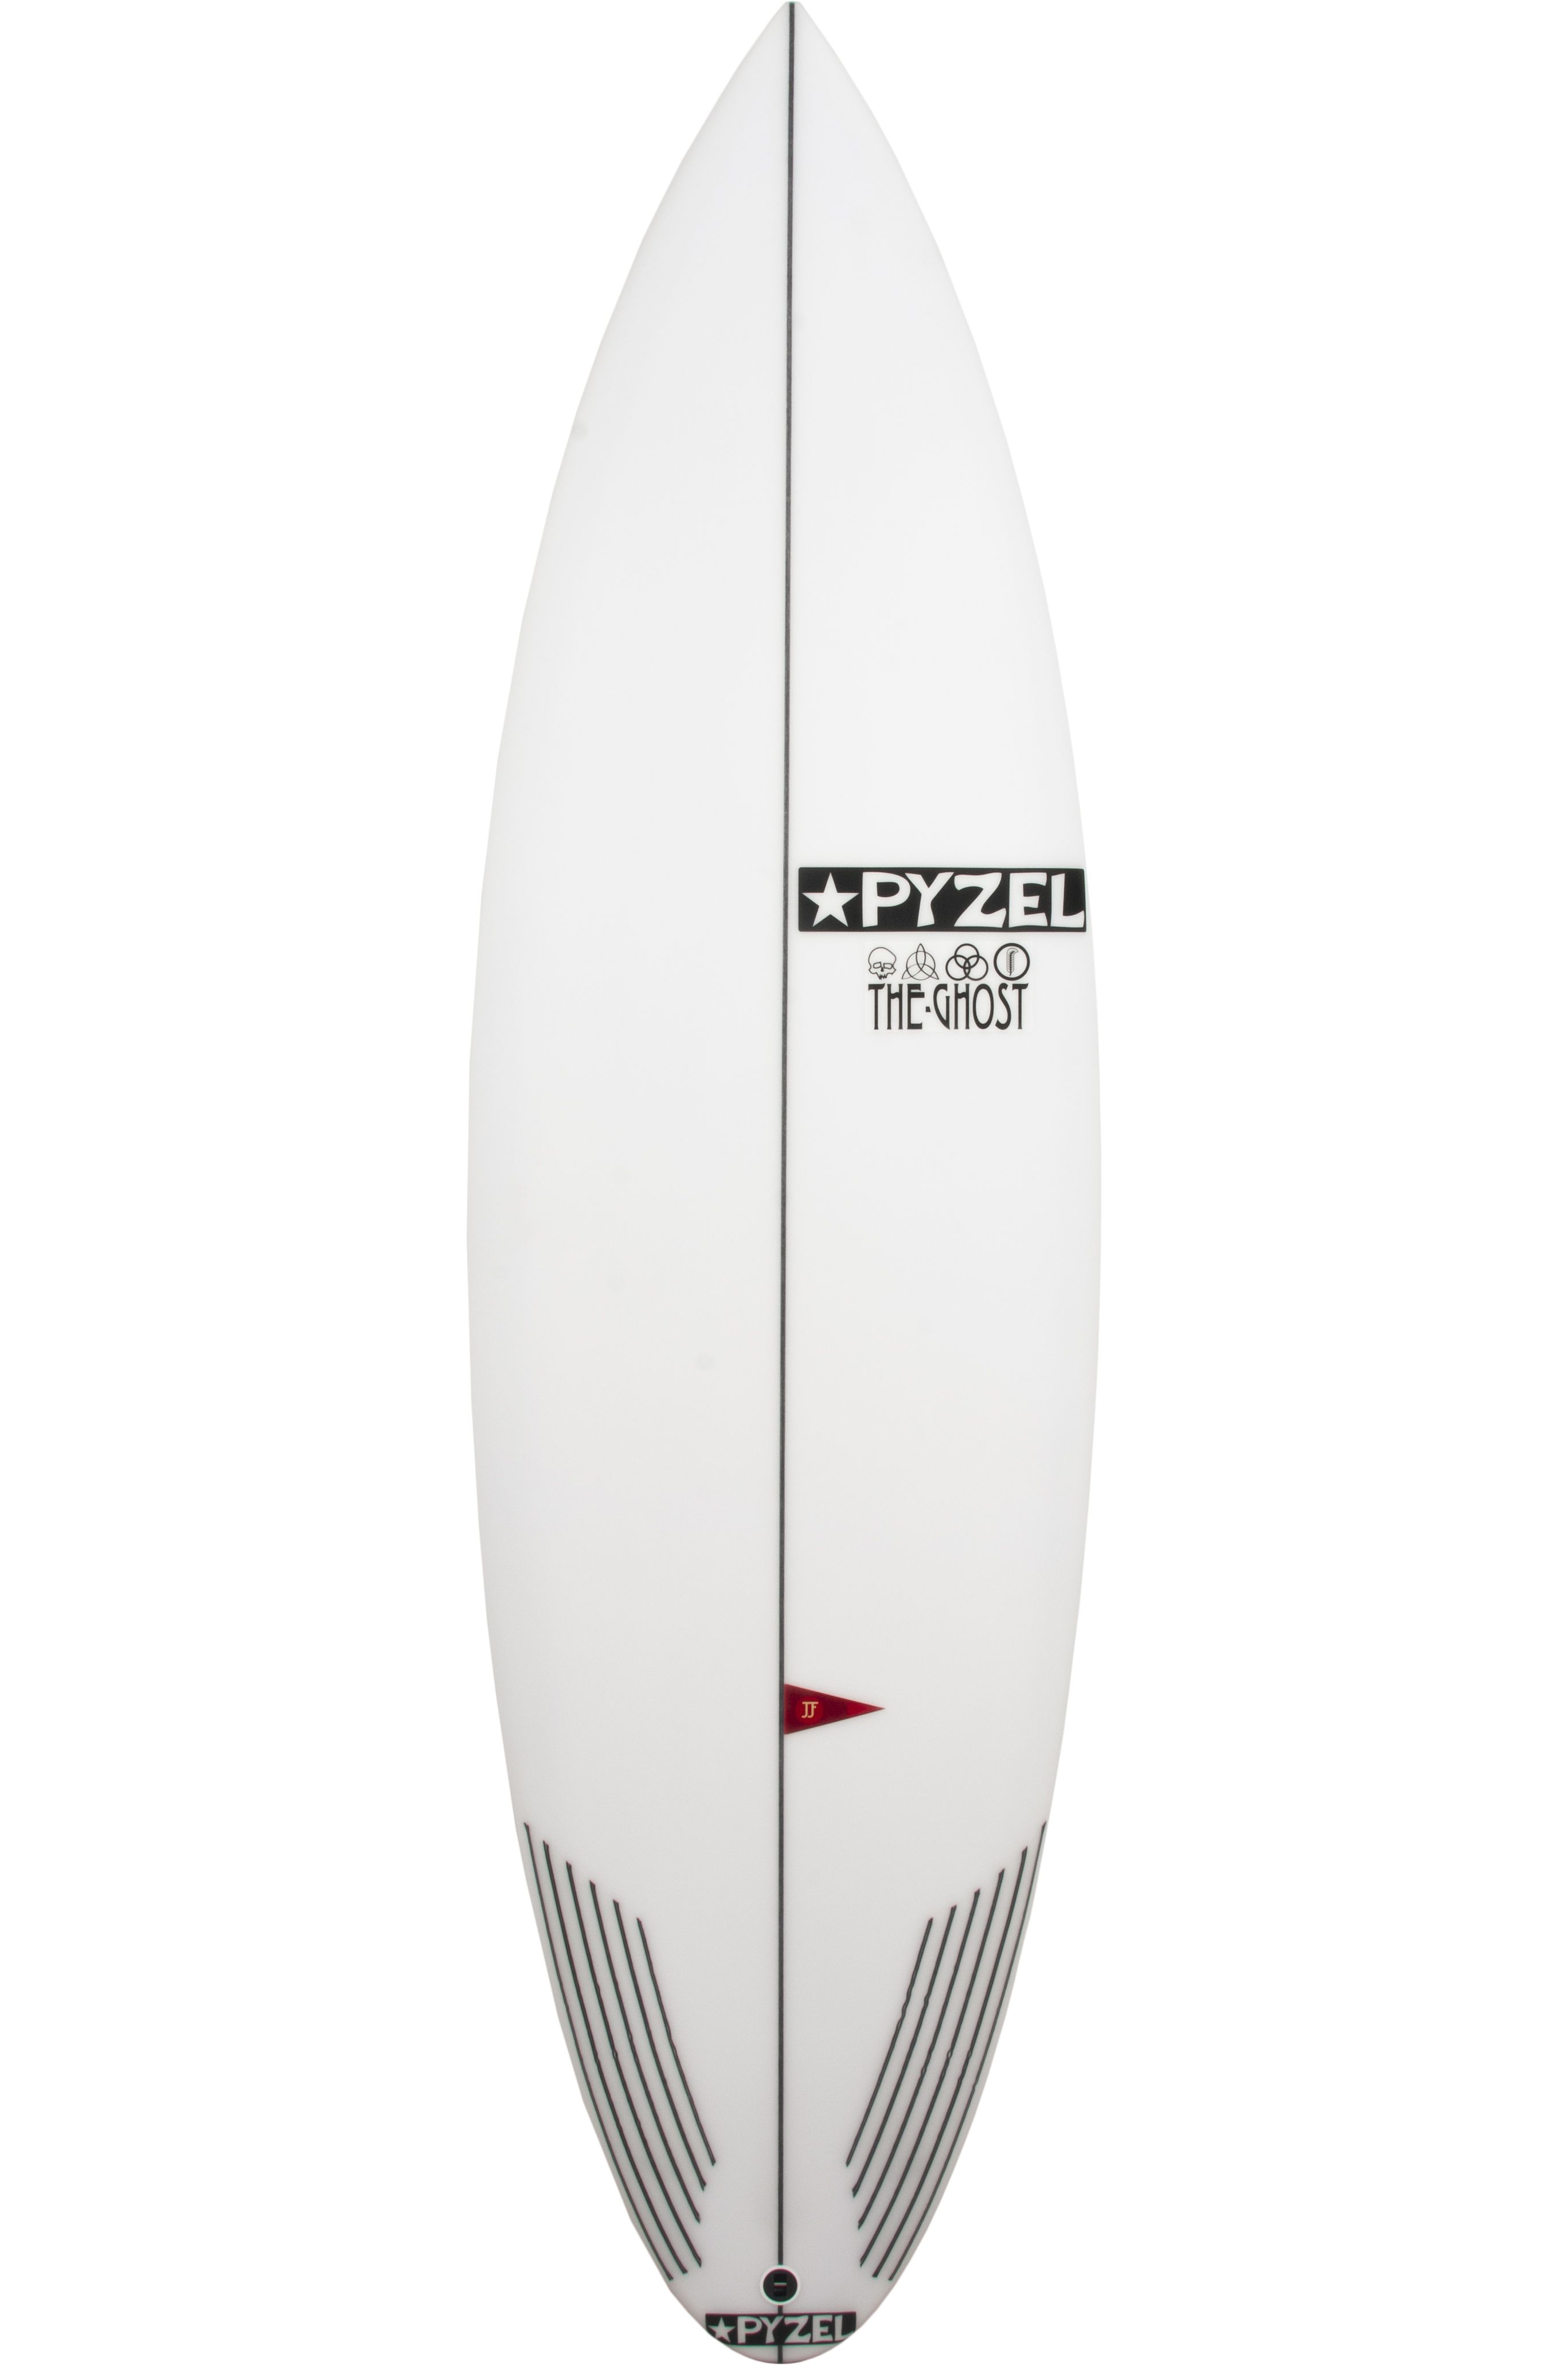 Prancha Surf Pyzel 6'3 GHOST Round Pin Tail - White FCS II Multisystem 6ft3